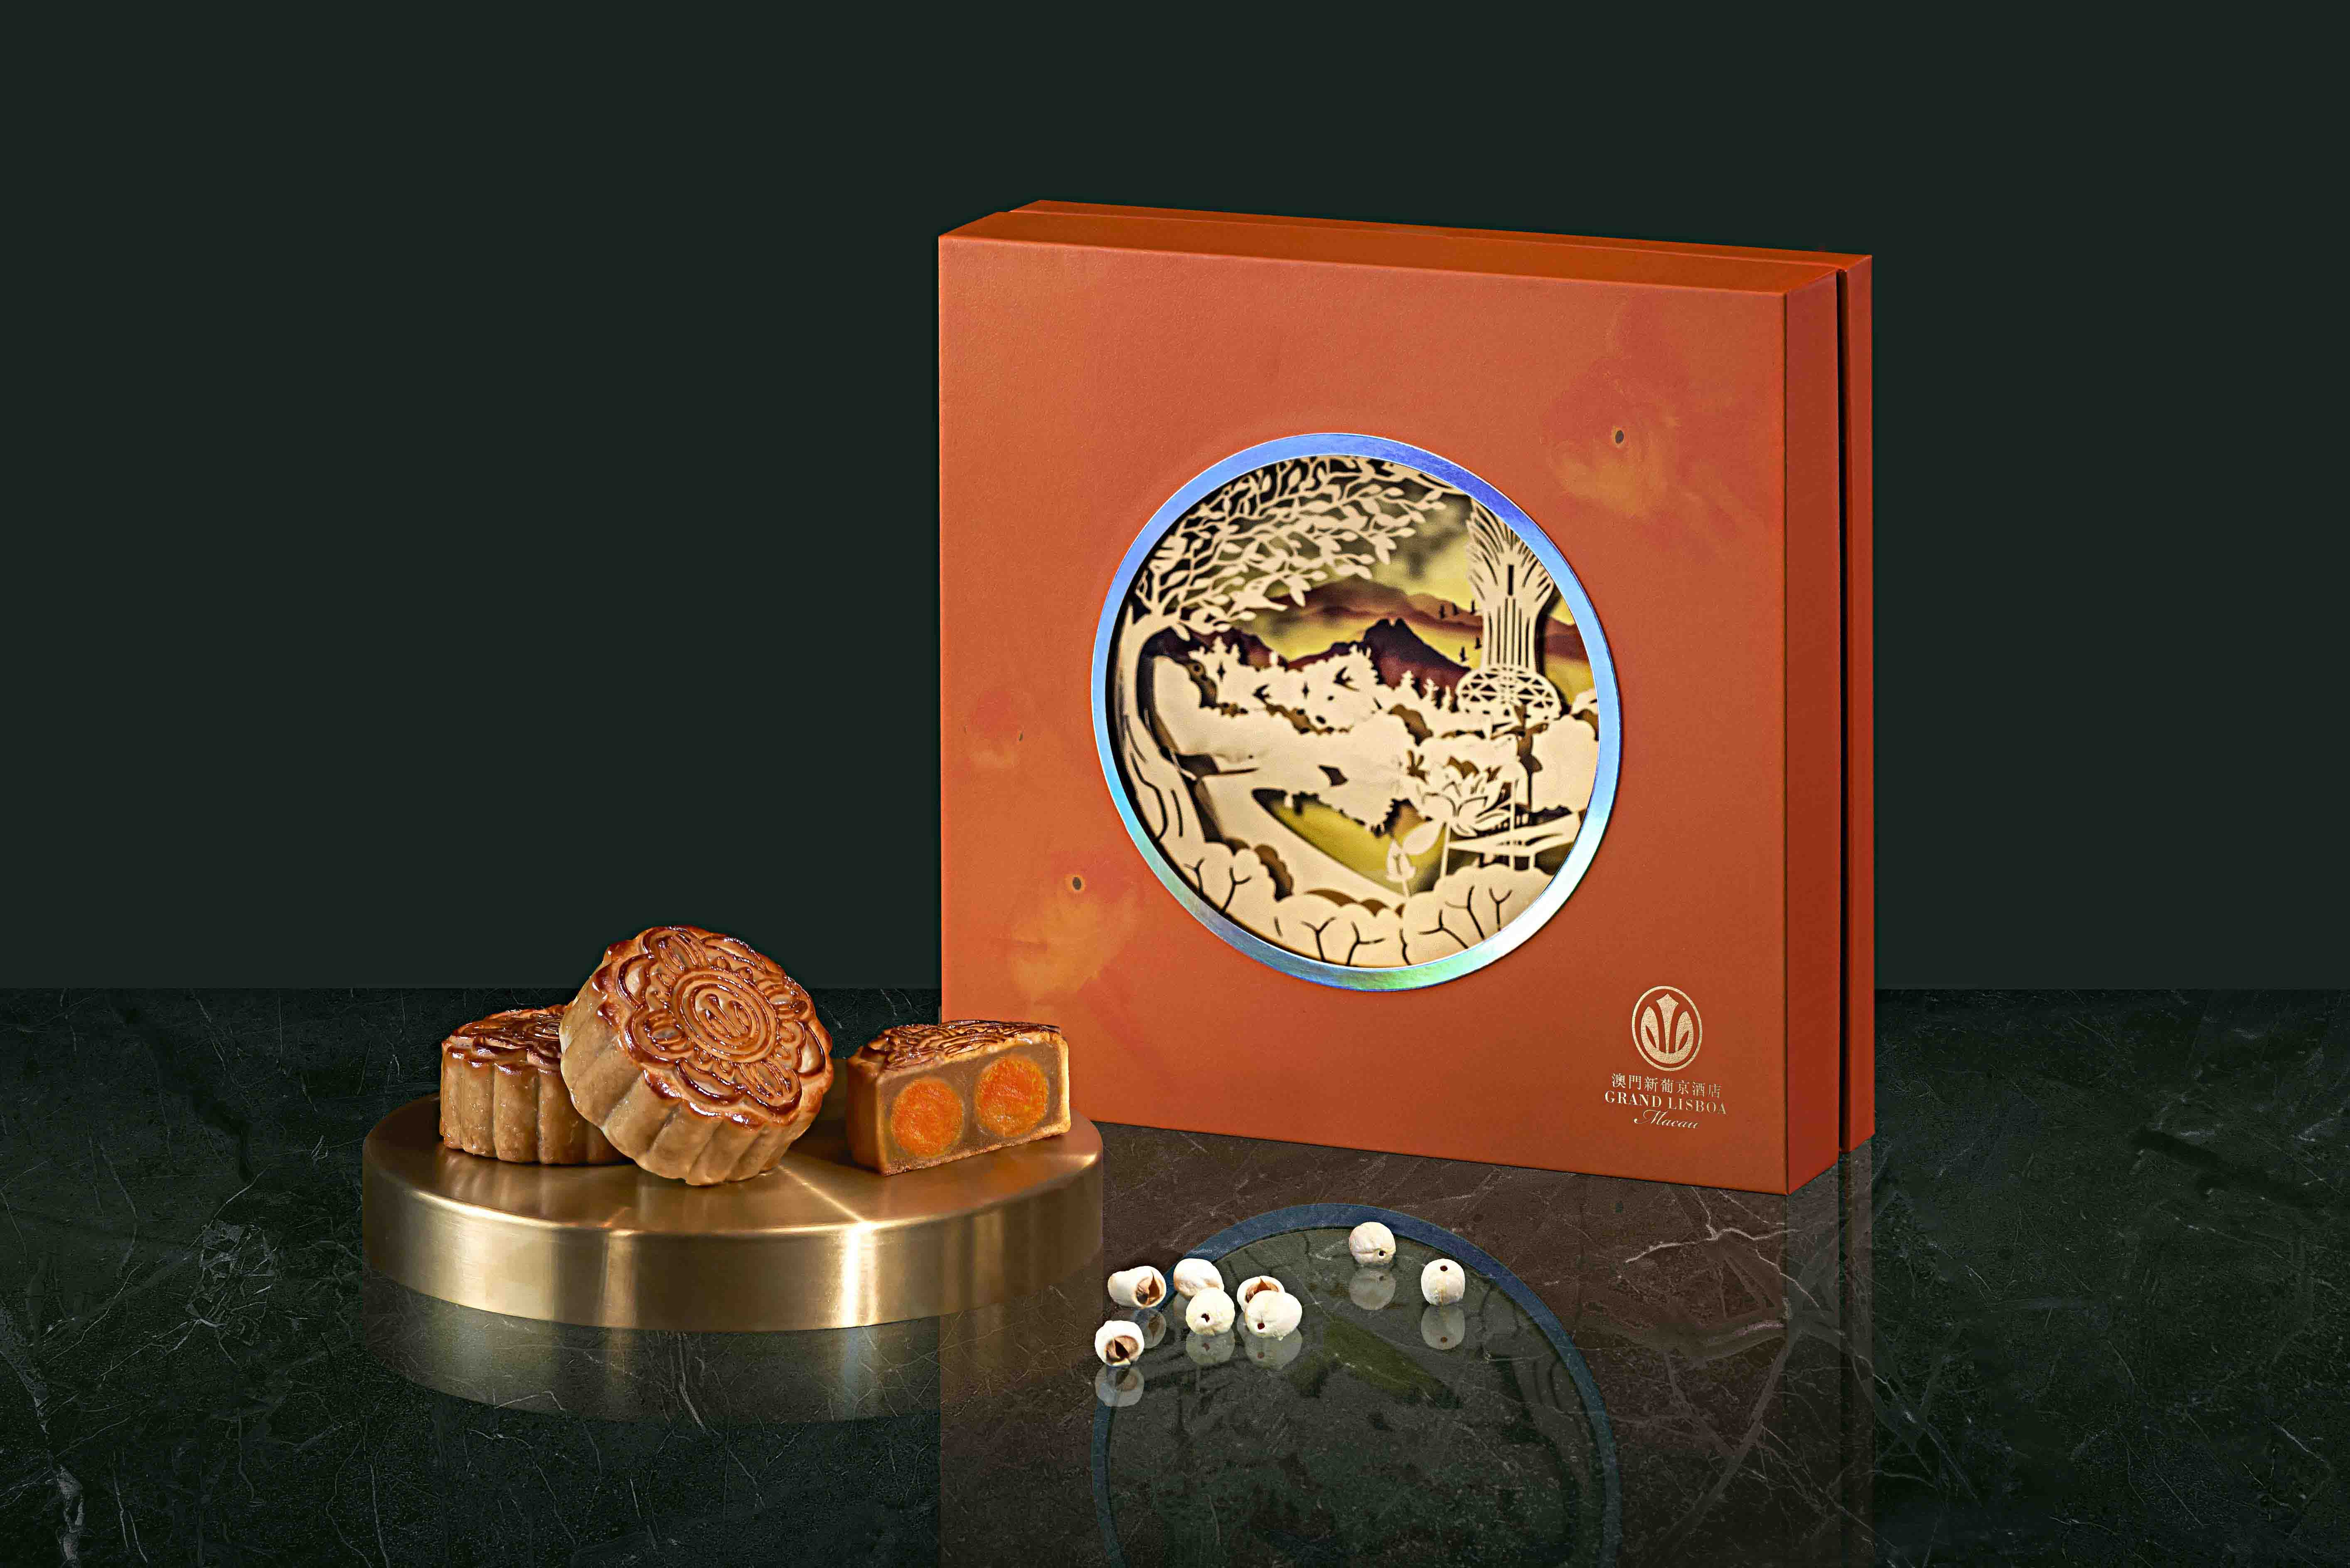 Grand Lisboa The 8 Mooncake with Double Egg Yolk and Lotus Seed Paste